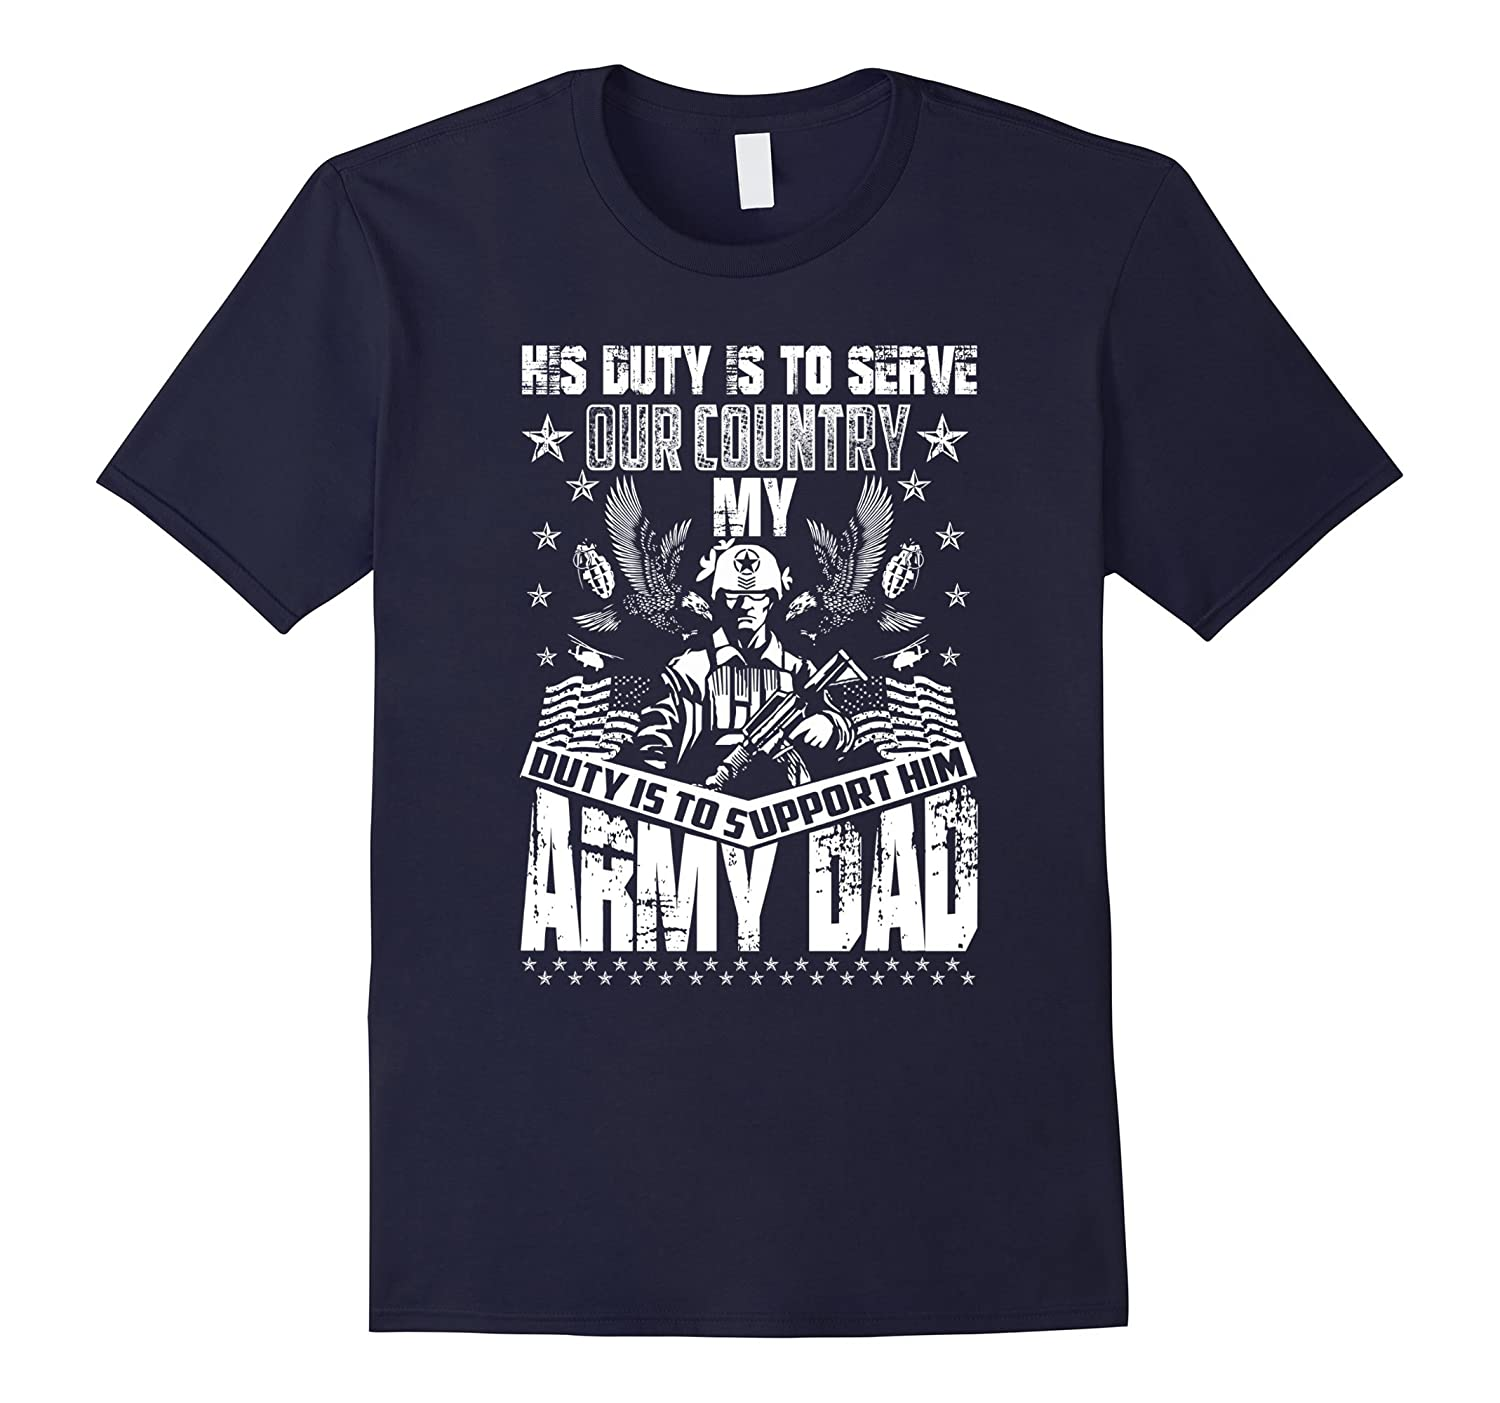 Army Dad - His Duty Is To Serve Our Country Army Dad-Art